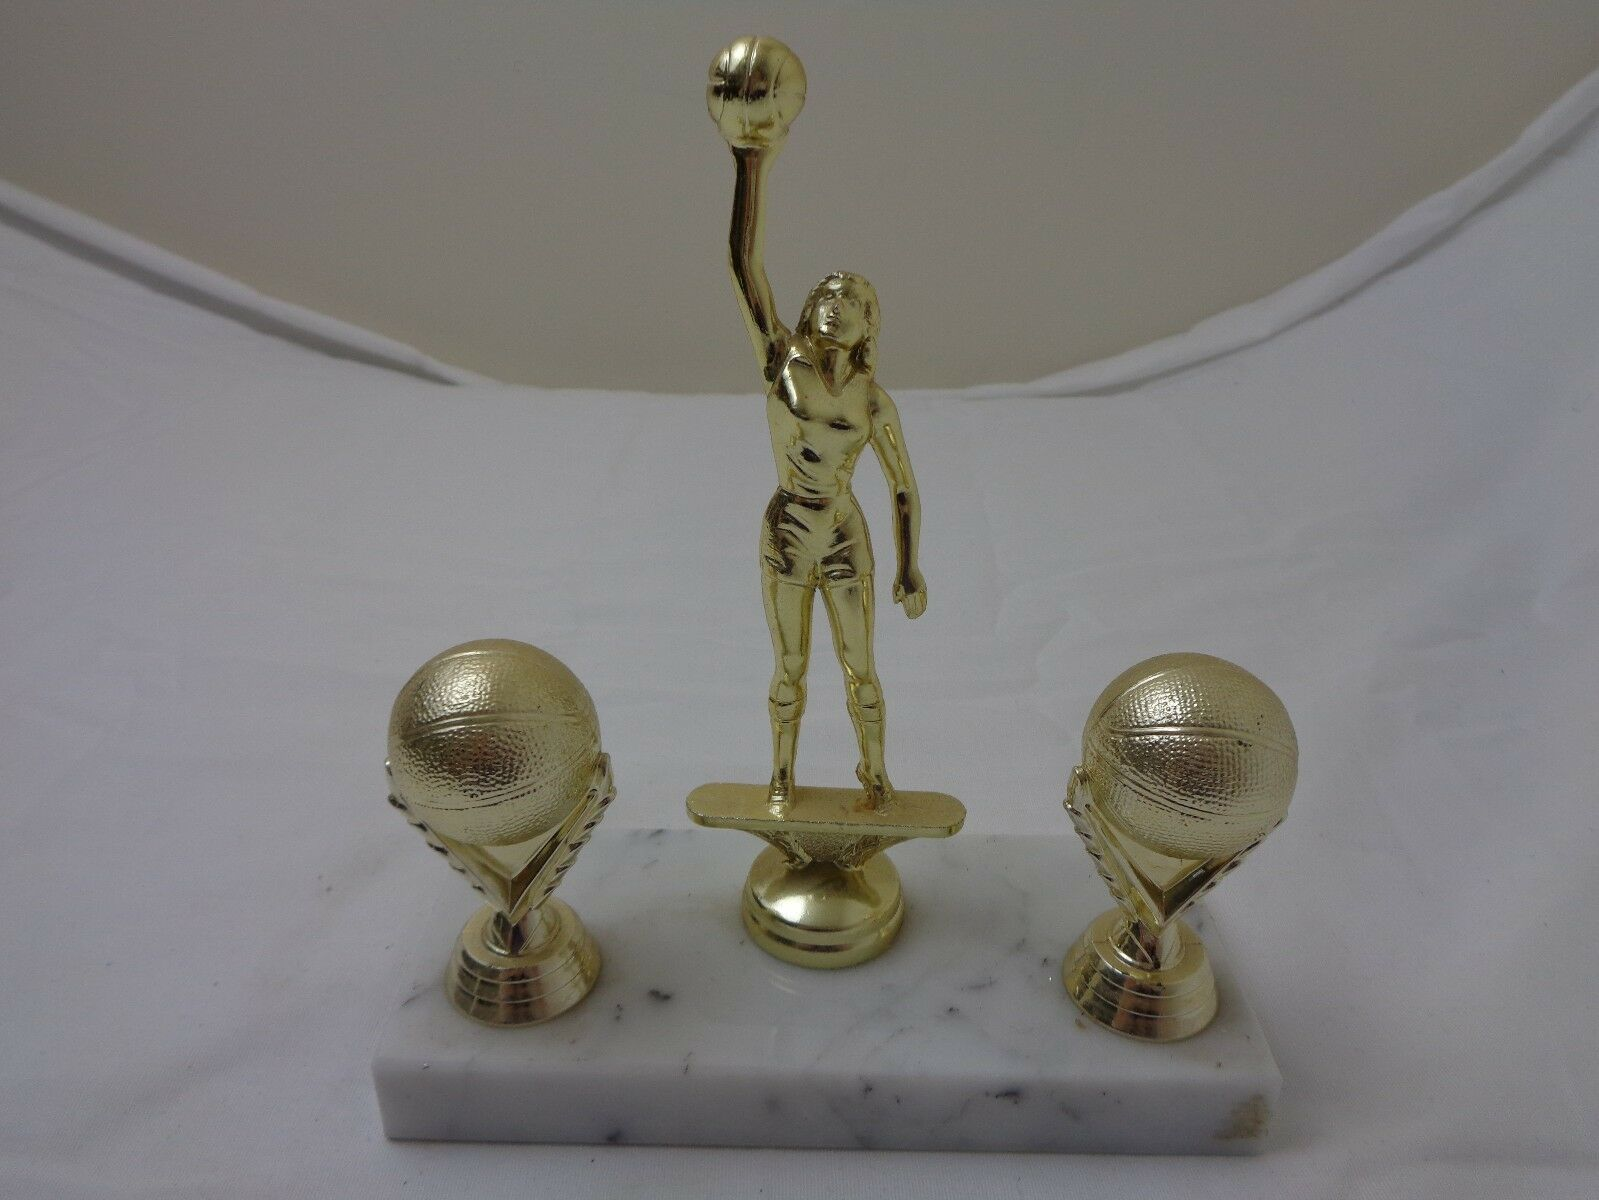 Vintage Women's Basketball Trophy on Marble Base